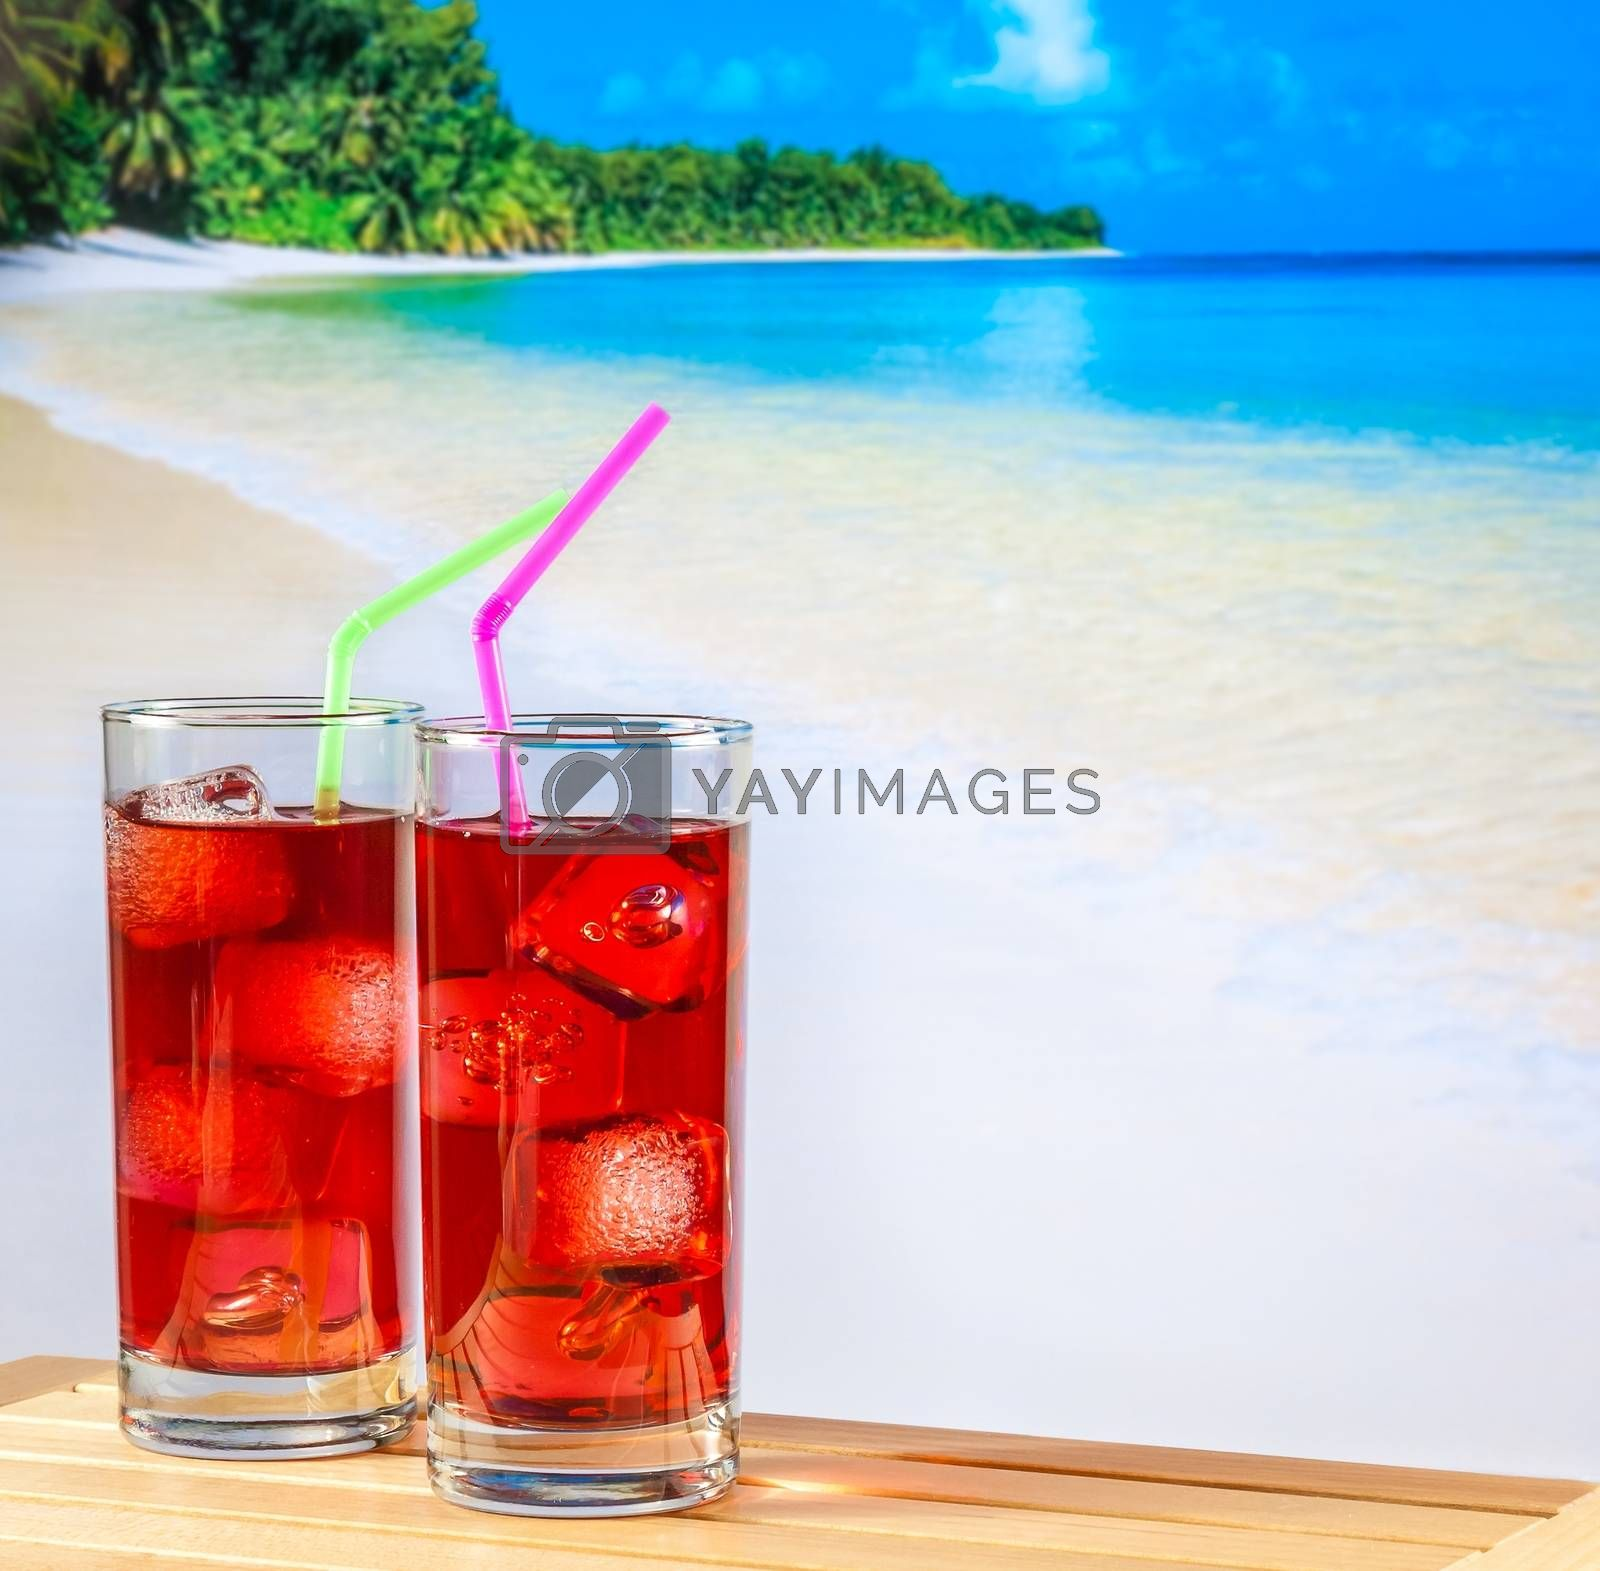 two glasses of red cocktail with blur beach and space for text by donfiore